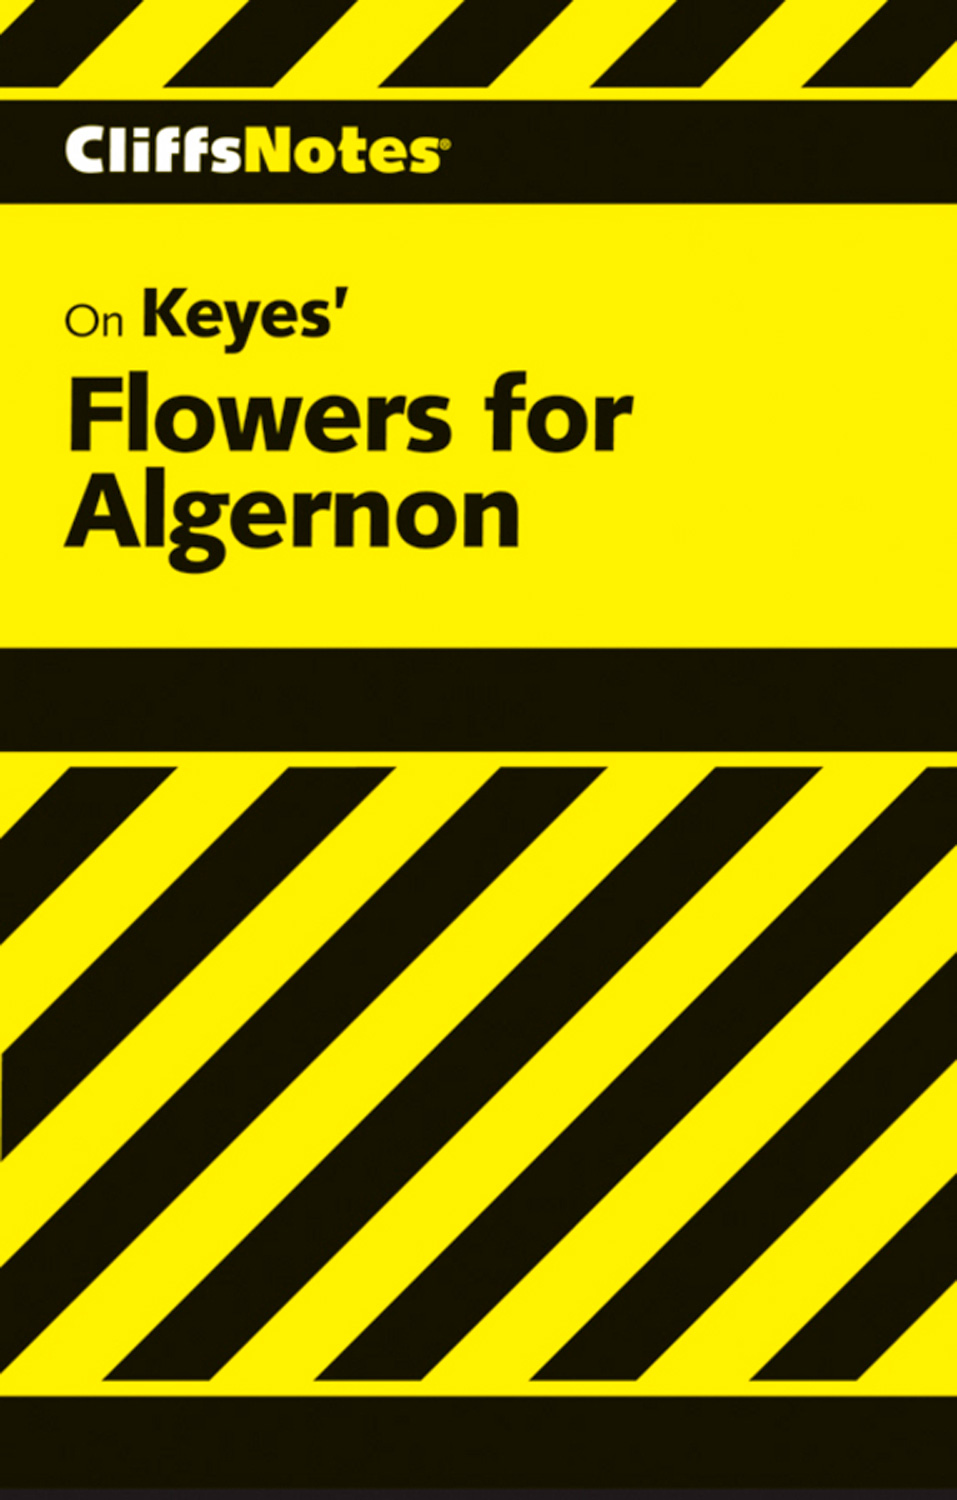 CliffsNotes on Keyes' Flowers For Algernon-9780544181540